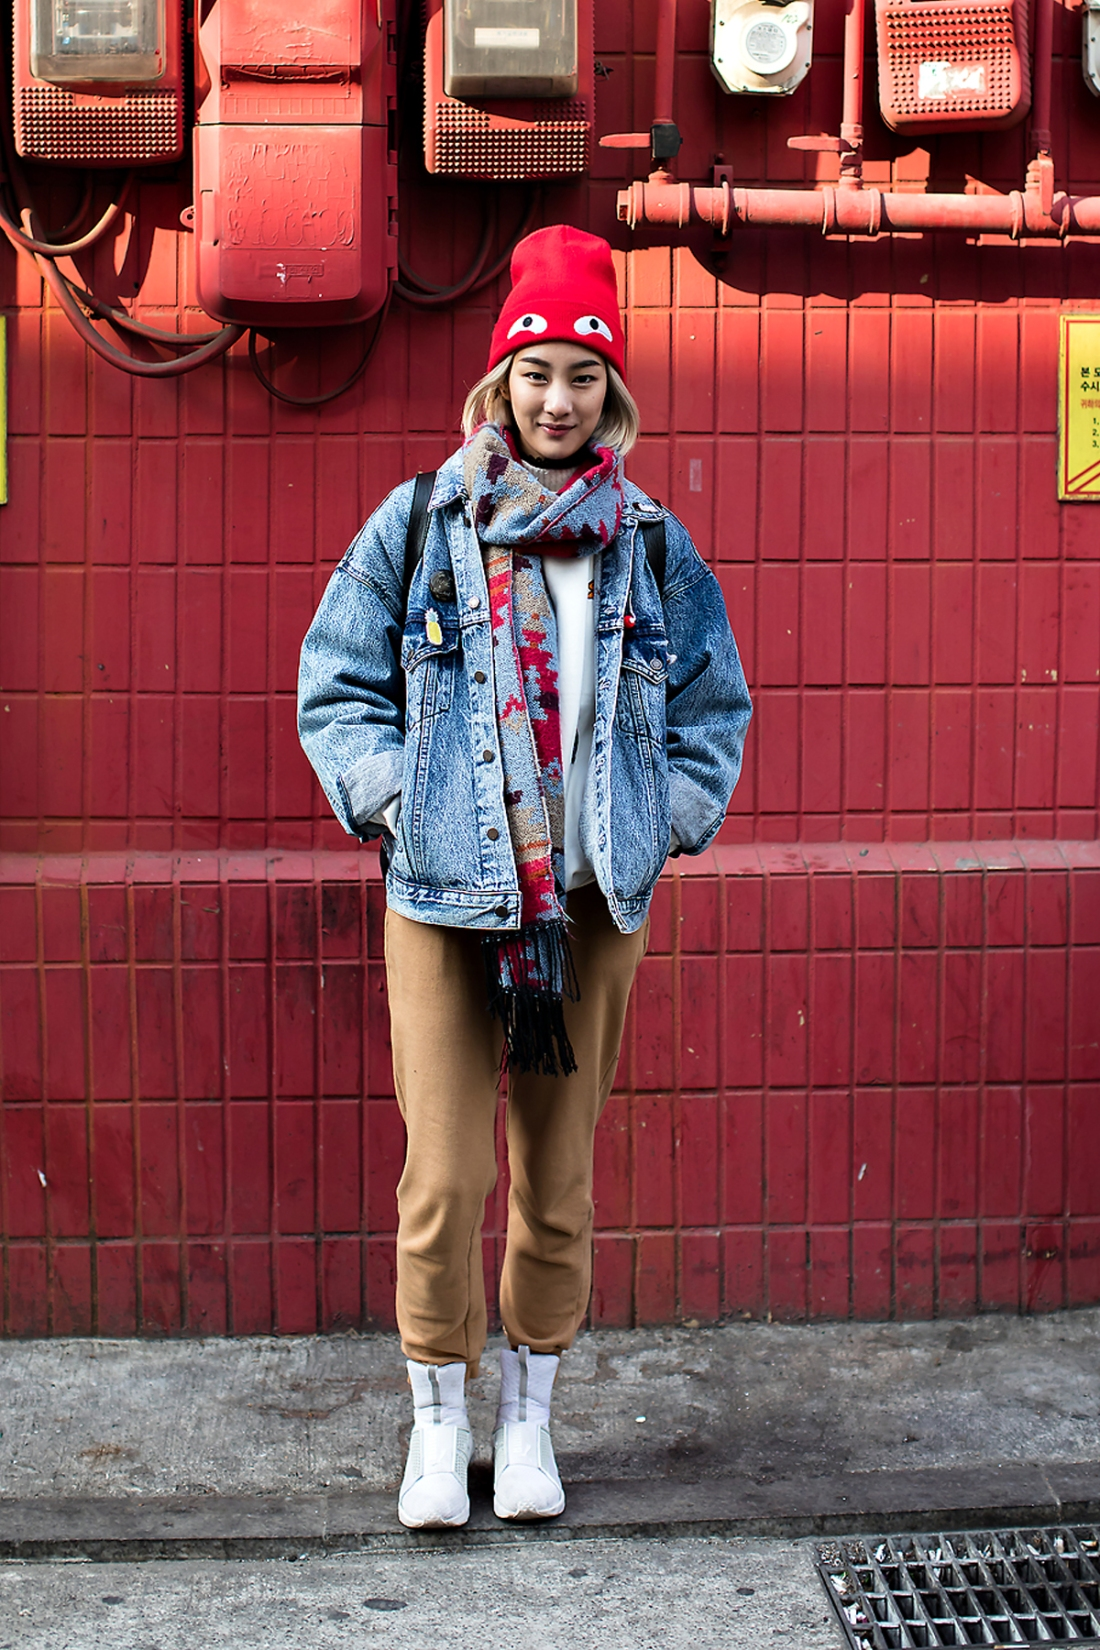 rebecca-jiang-street-fashion-2017-in-seoul